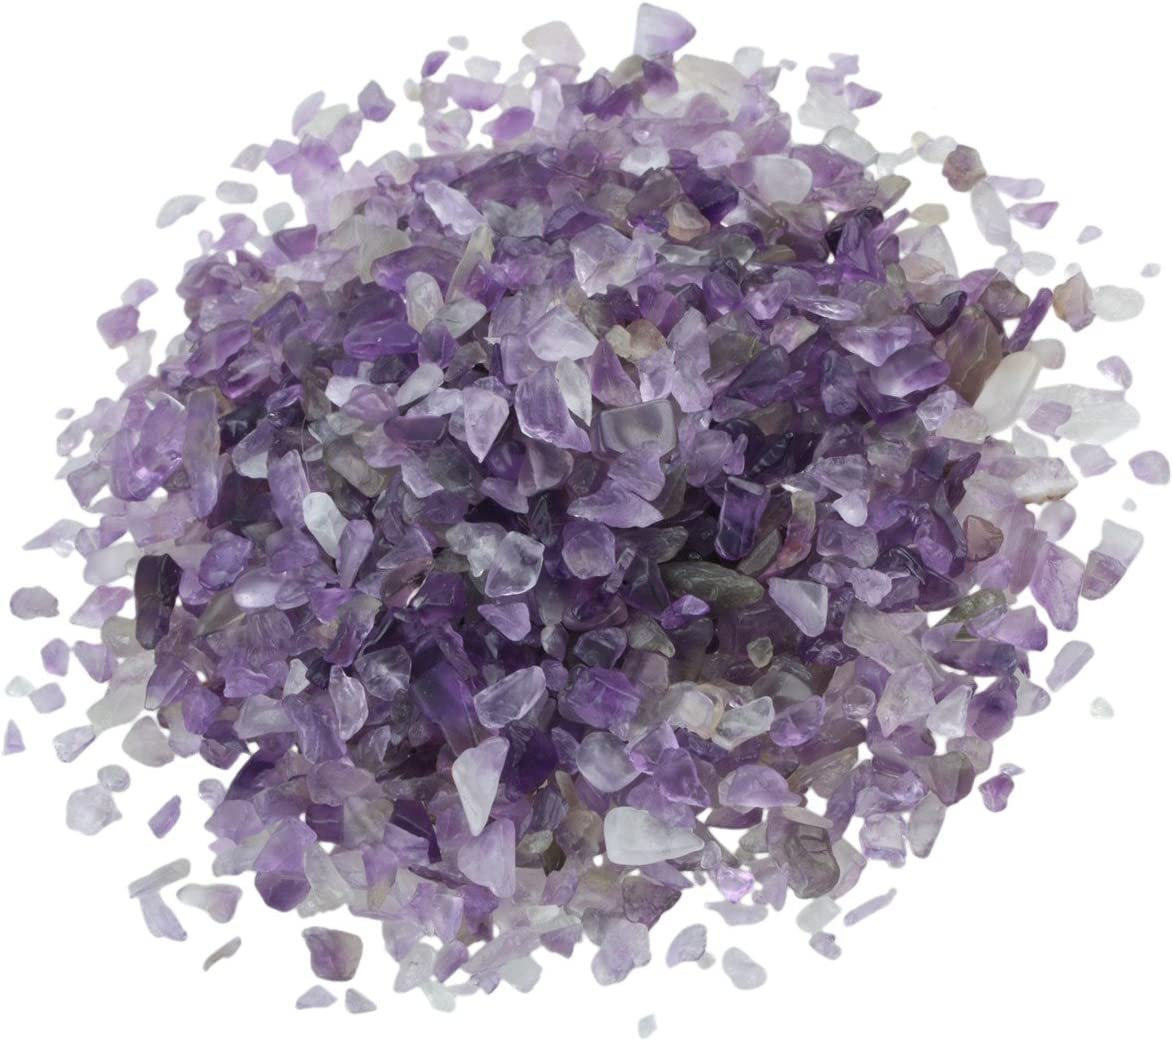 rockcloud 1 lb Amethyst Small Tumbled Chips Crushed Stone Healing Reiki Crystal Jewelry Making Home Decoration